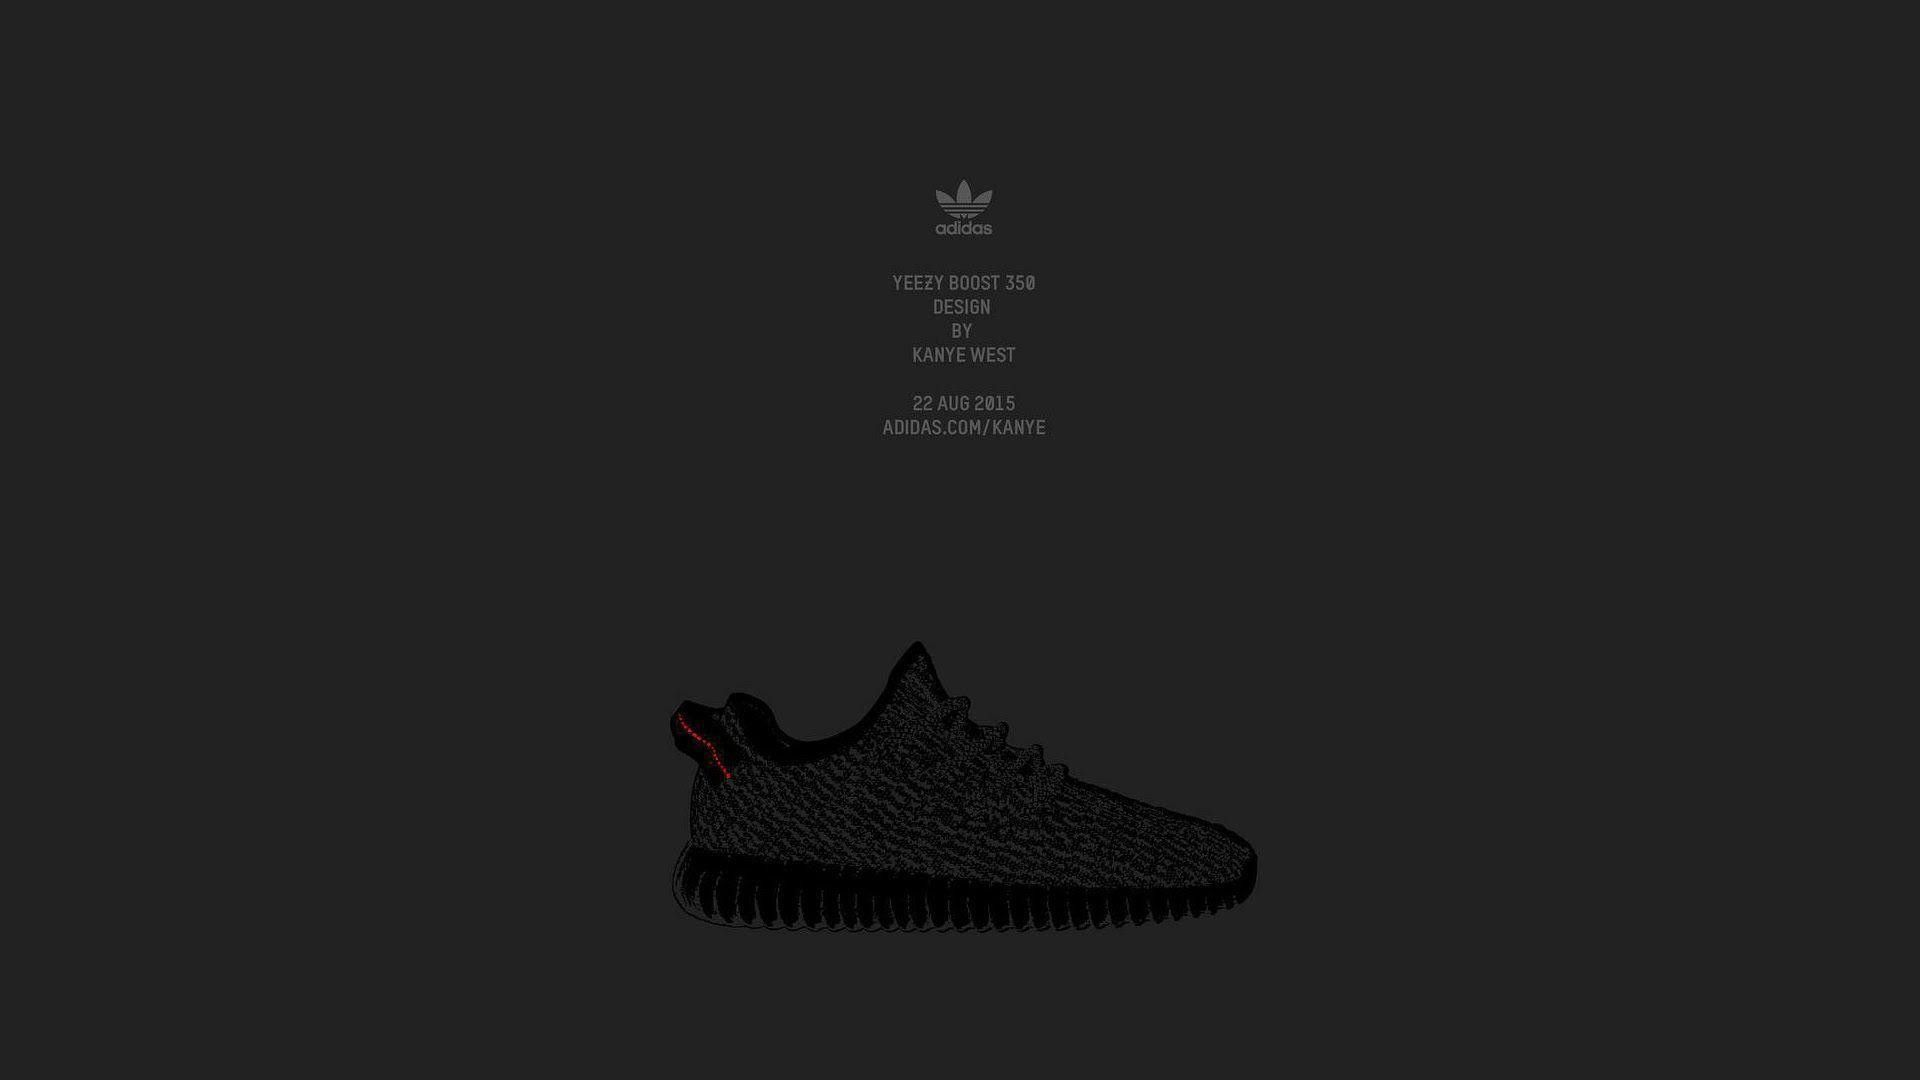 Adidas Yeezy Wallpapers - Top Free